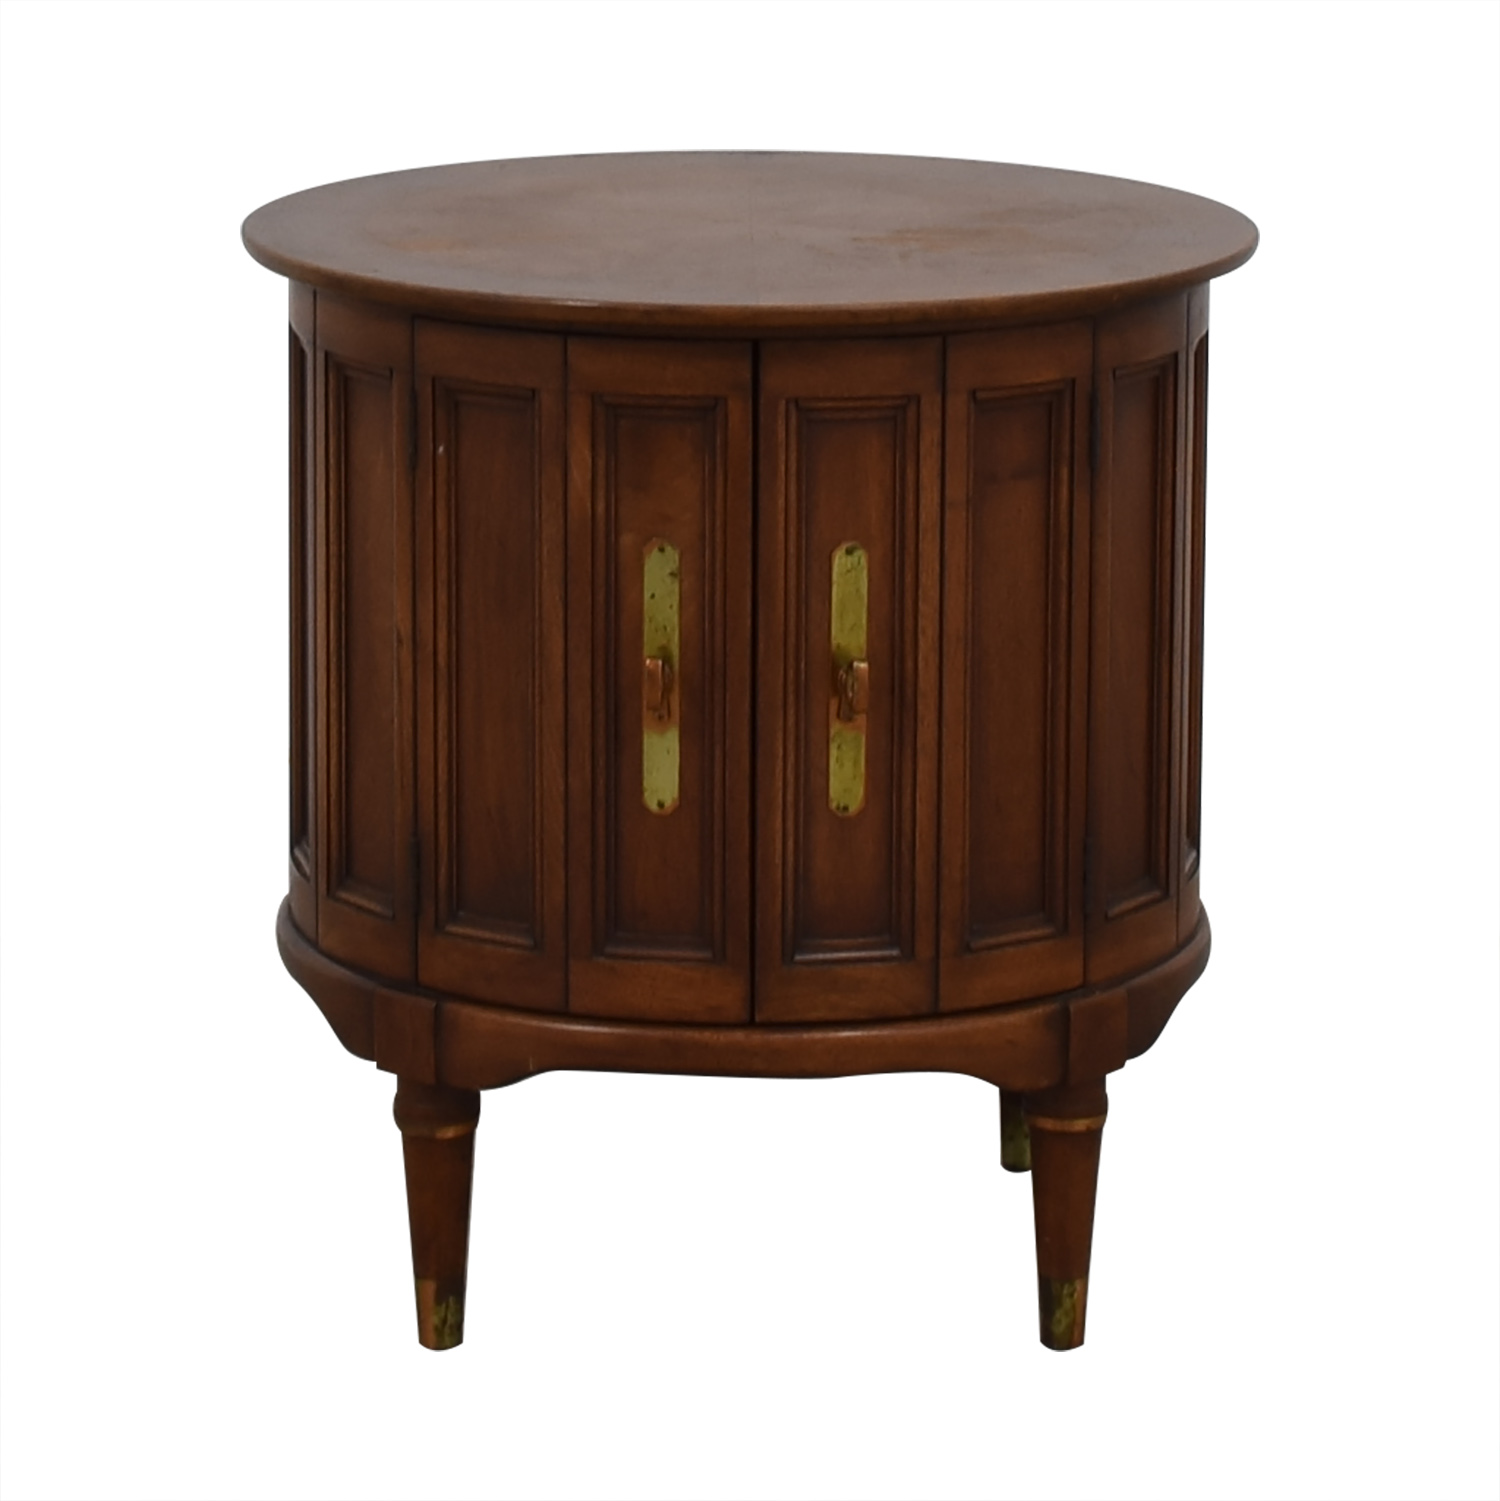 85 Off Antique Round Wood End Table Tables